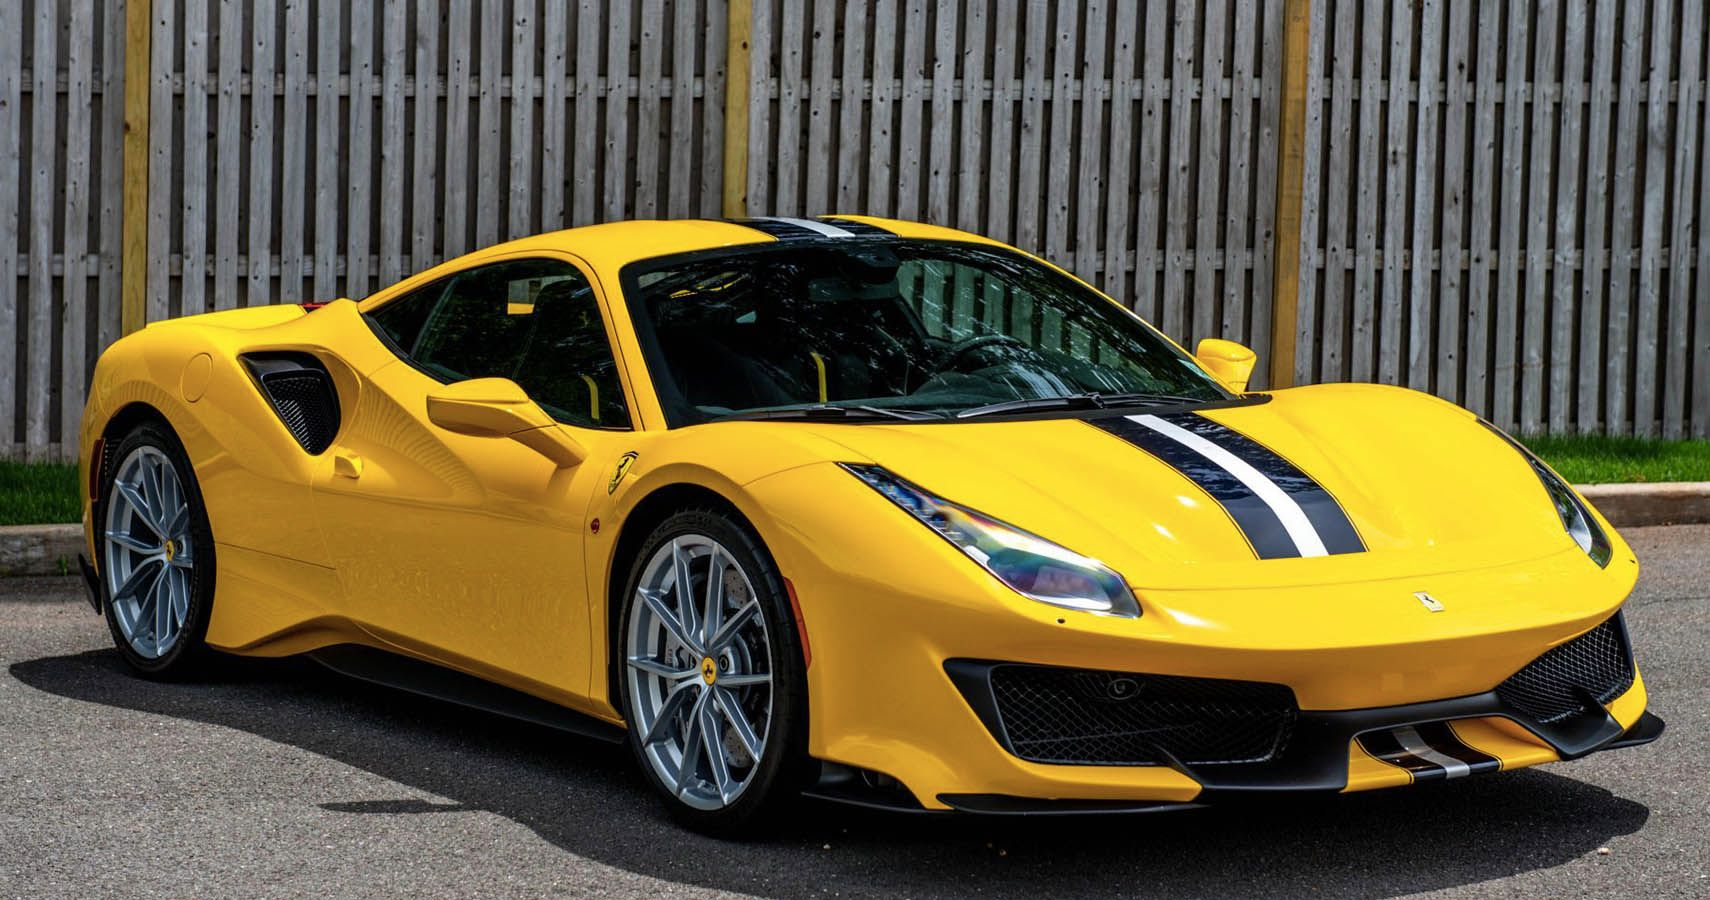 2019 Ferrari 488 Pista Is Appealing In Yellow And Track Ready